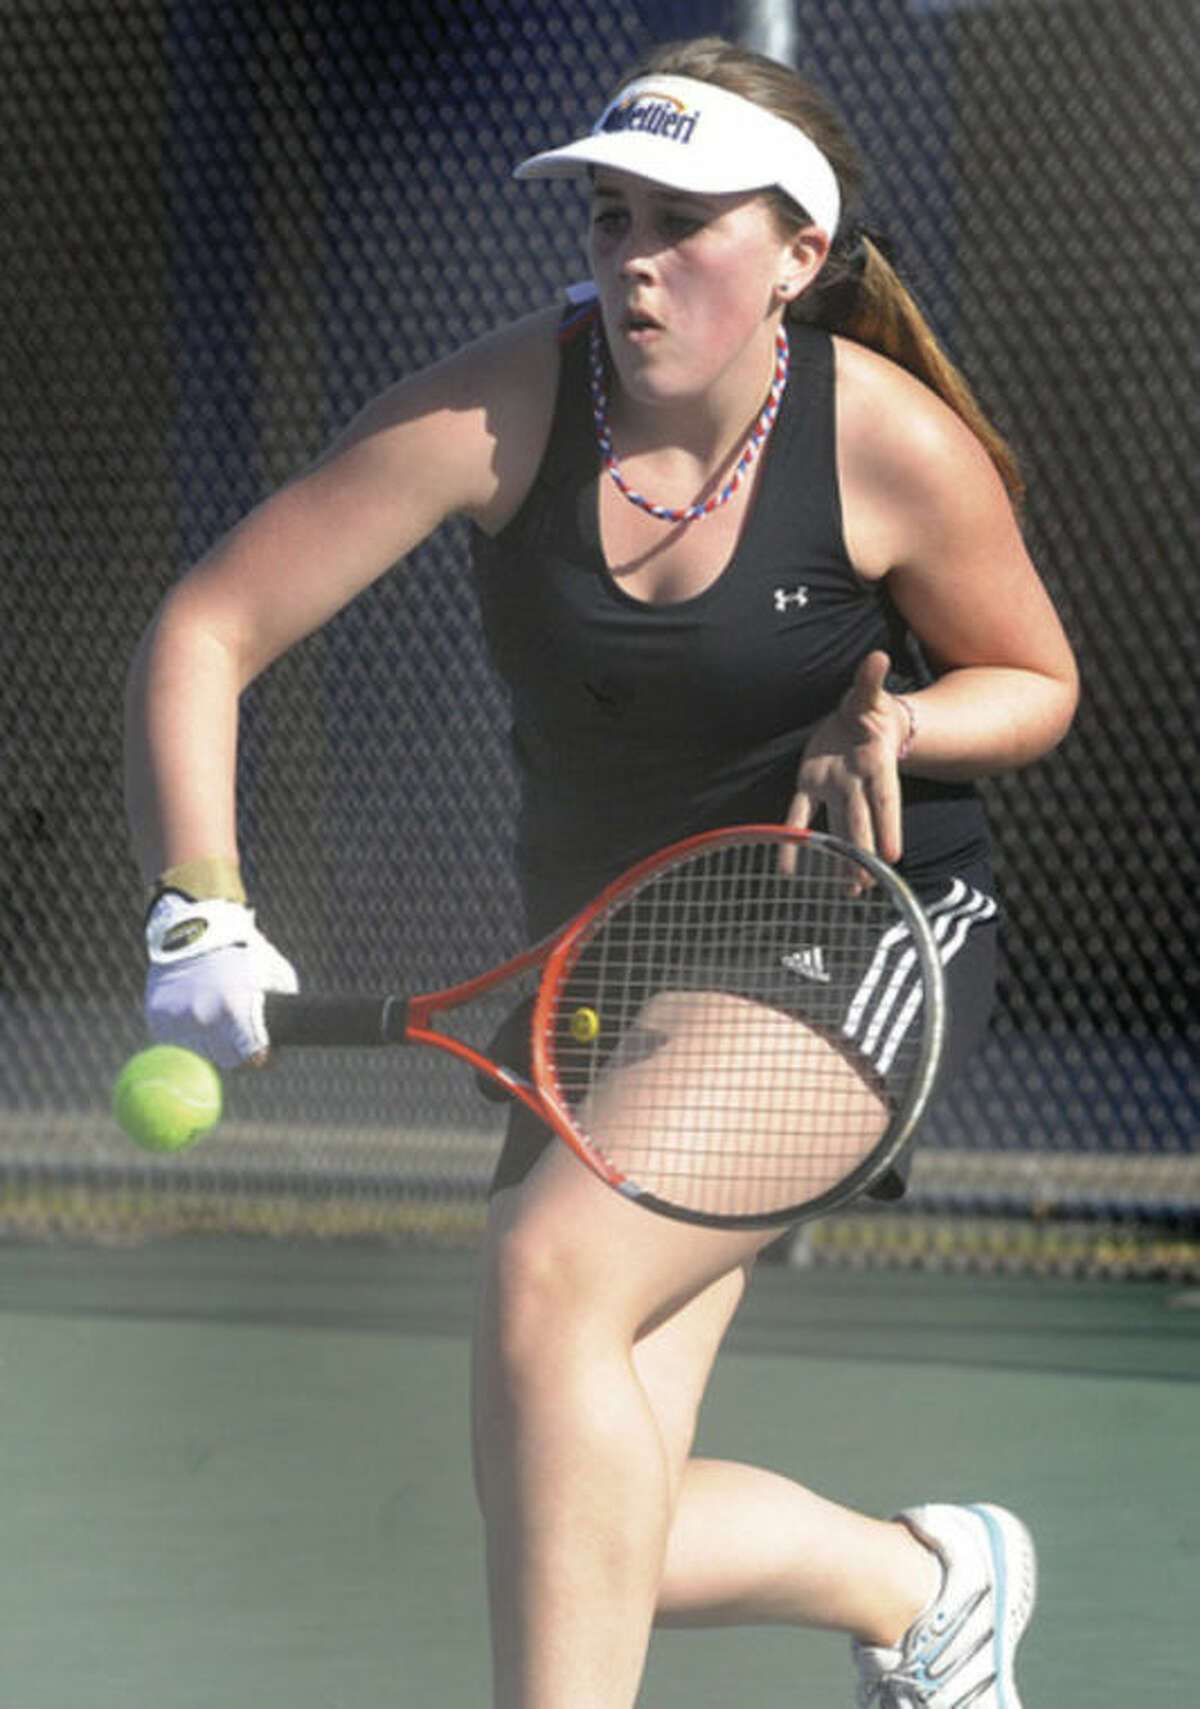 Hour photo/Matthew Vinci Brien McMahon's Rebecca Link returns during the No. 1 singles match against Norwalk's Jacqui O'Hara Tuesday. Link was the winner.